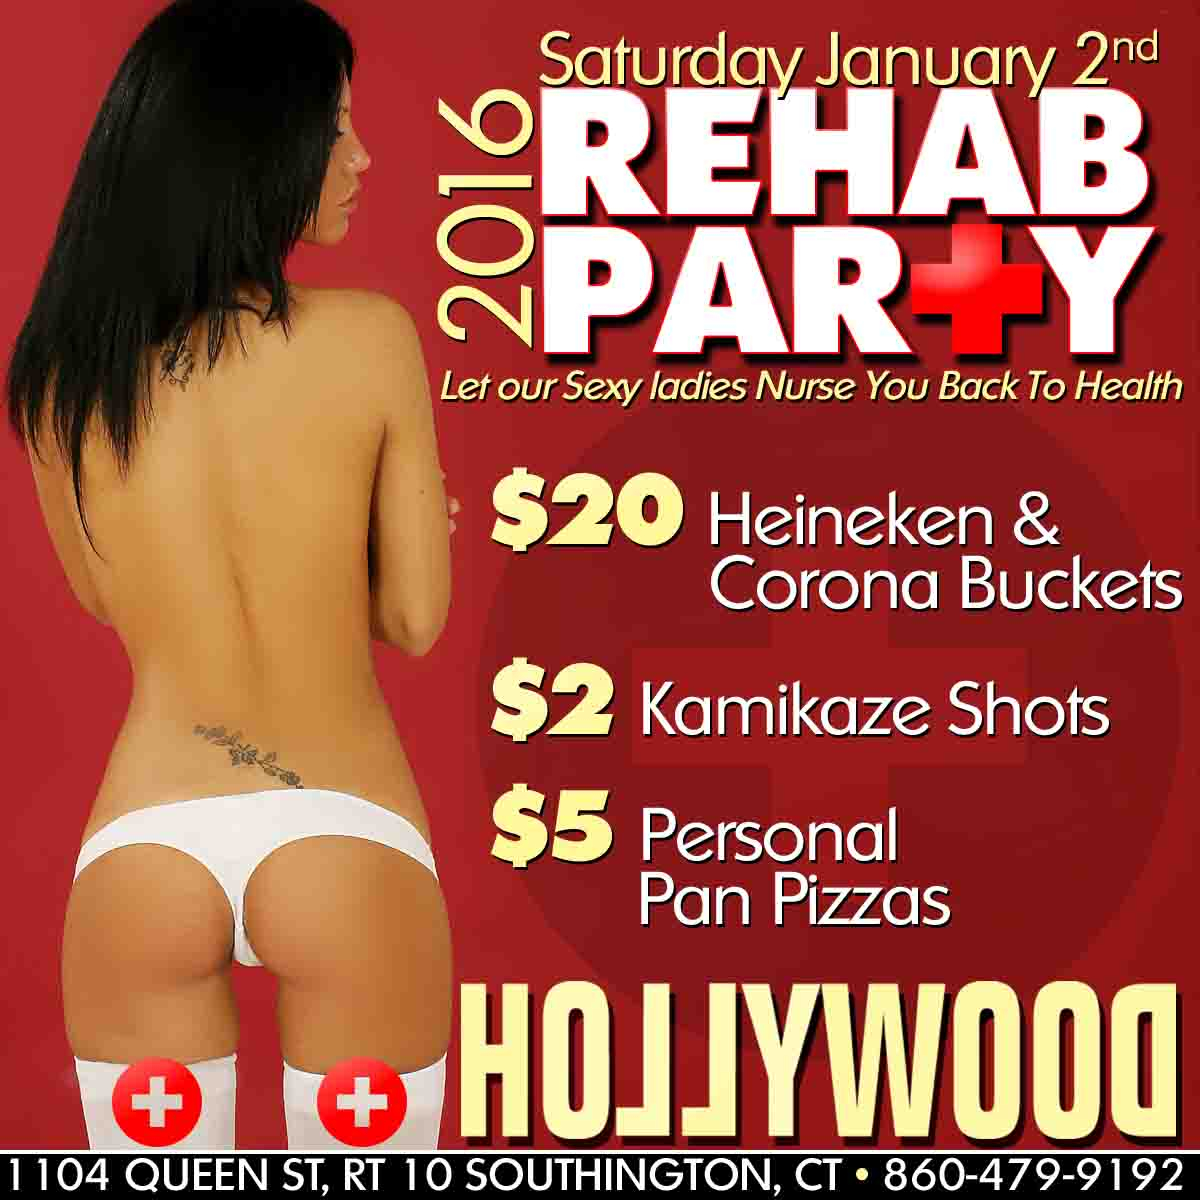 Rehab Party | Hollywood Strip Club Connecticut CT